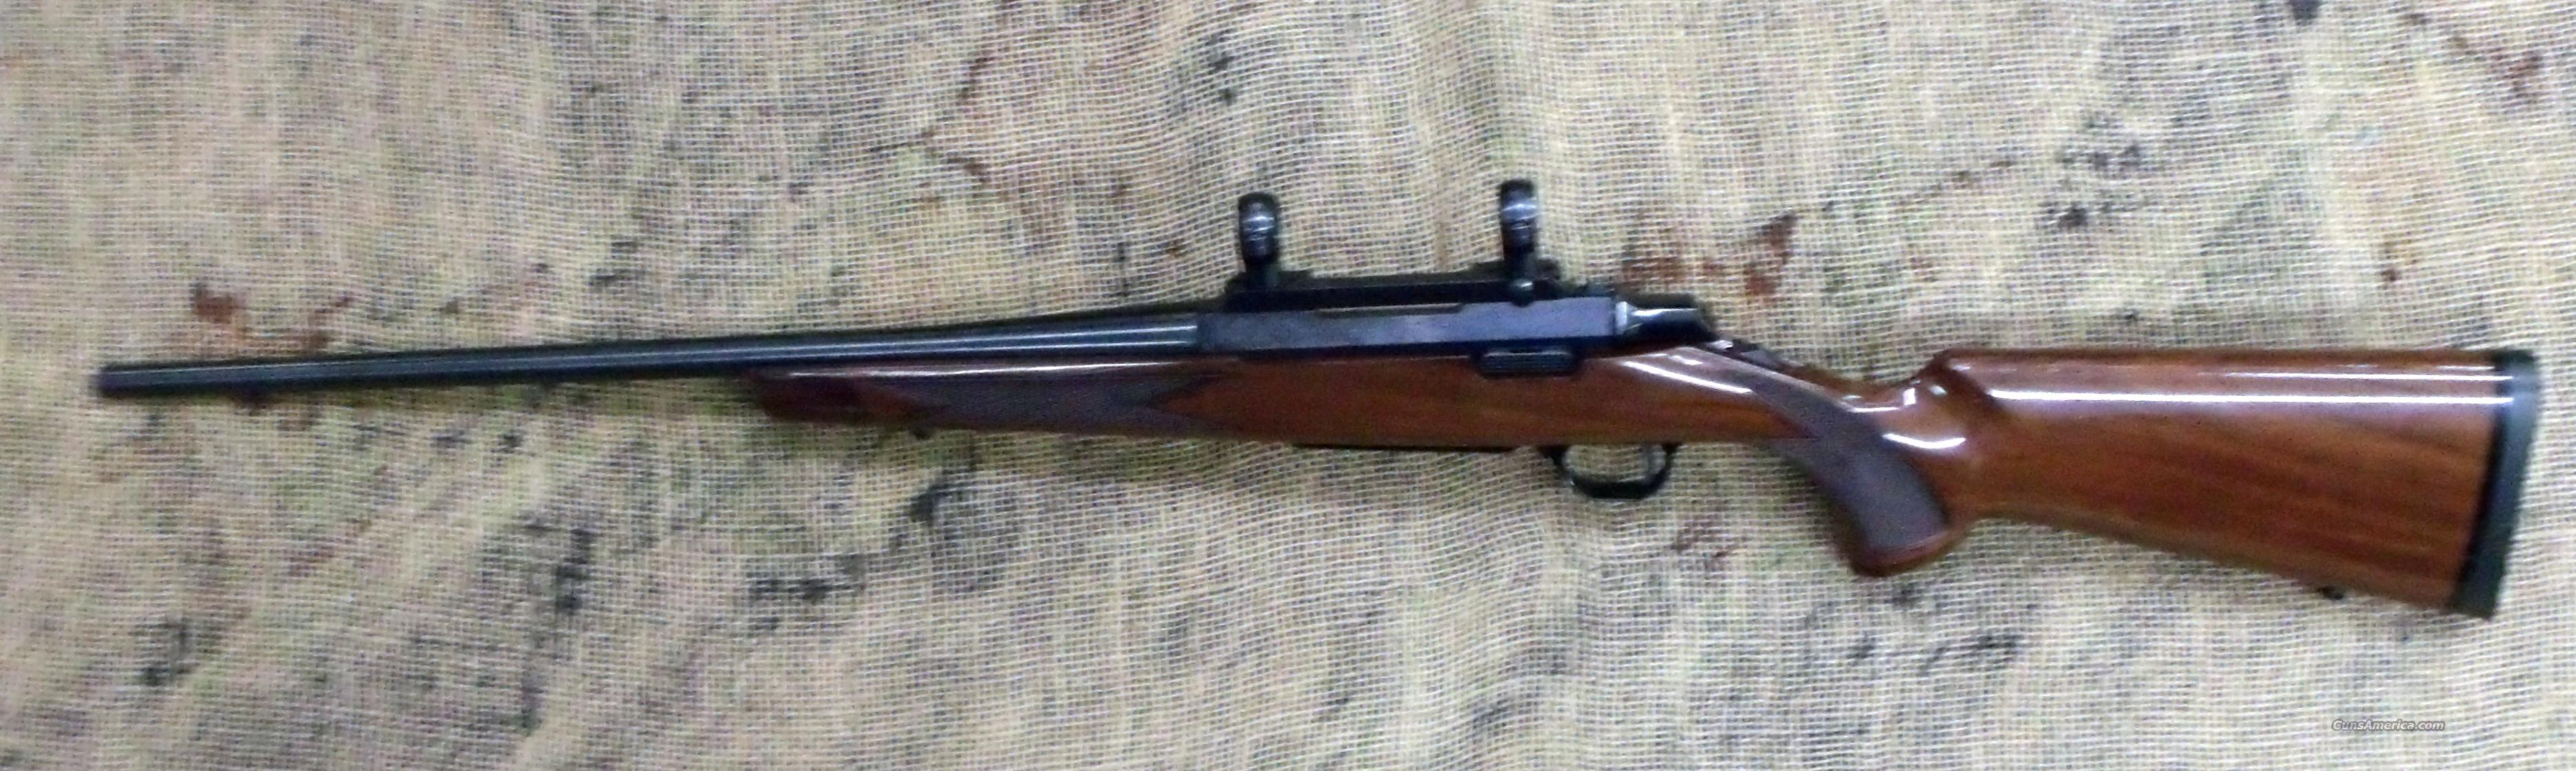 BROWNING A-Bolt II, Micro Medallion, 7mm08 Cal.  Guns > Rifles > Browning Rifles > Bolt Action > Hunting > Blue